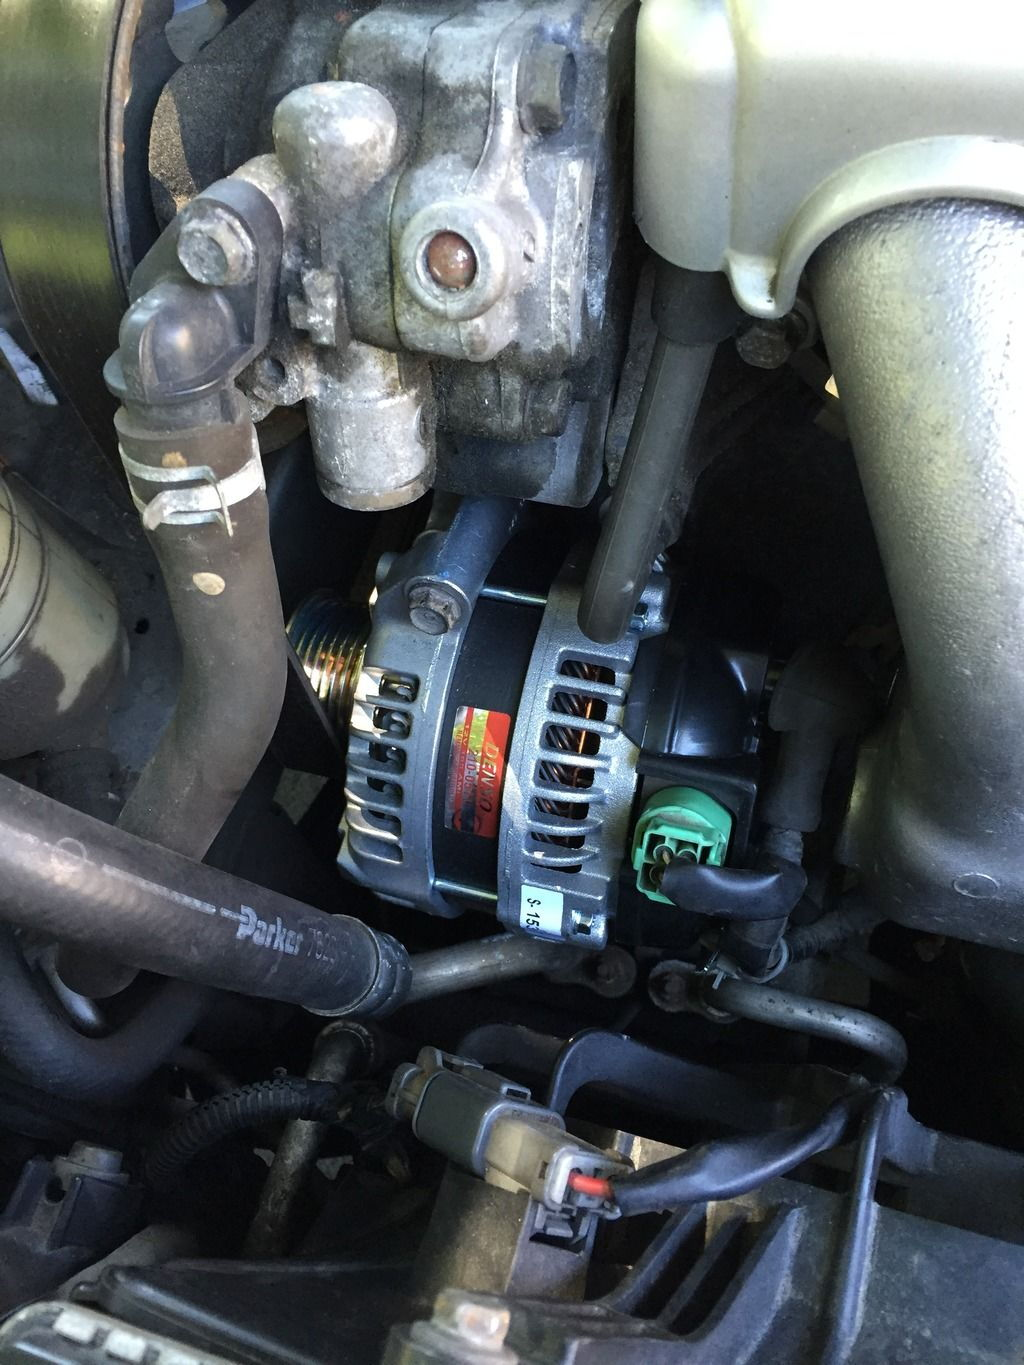 Acura Tsx Will Not Wot Start Battery Alternator Charging Issue Problem Electrical Drain Fuse Jump